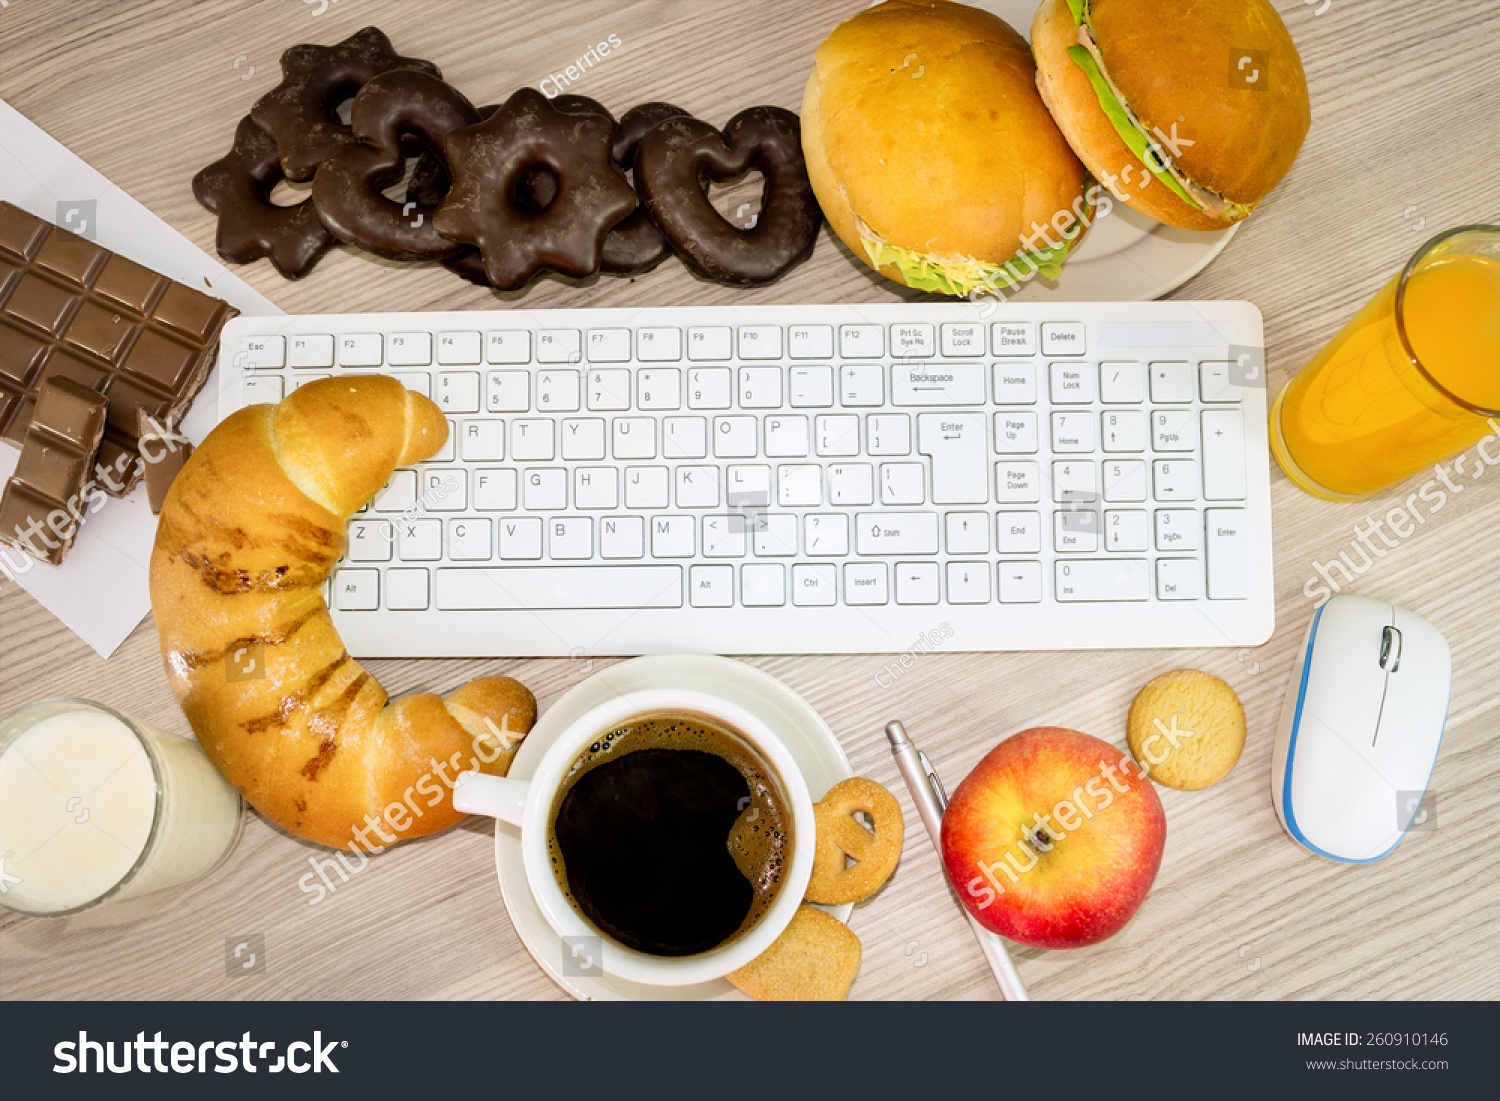 Lunchtime office keyboard covered food that stock photo 260910146 lunchtime in office keyboard covered with food that we eat during work biocorpaavc